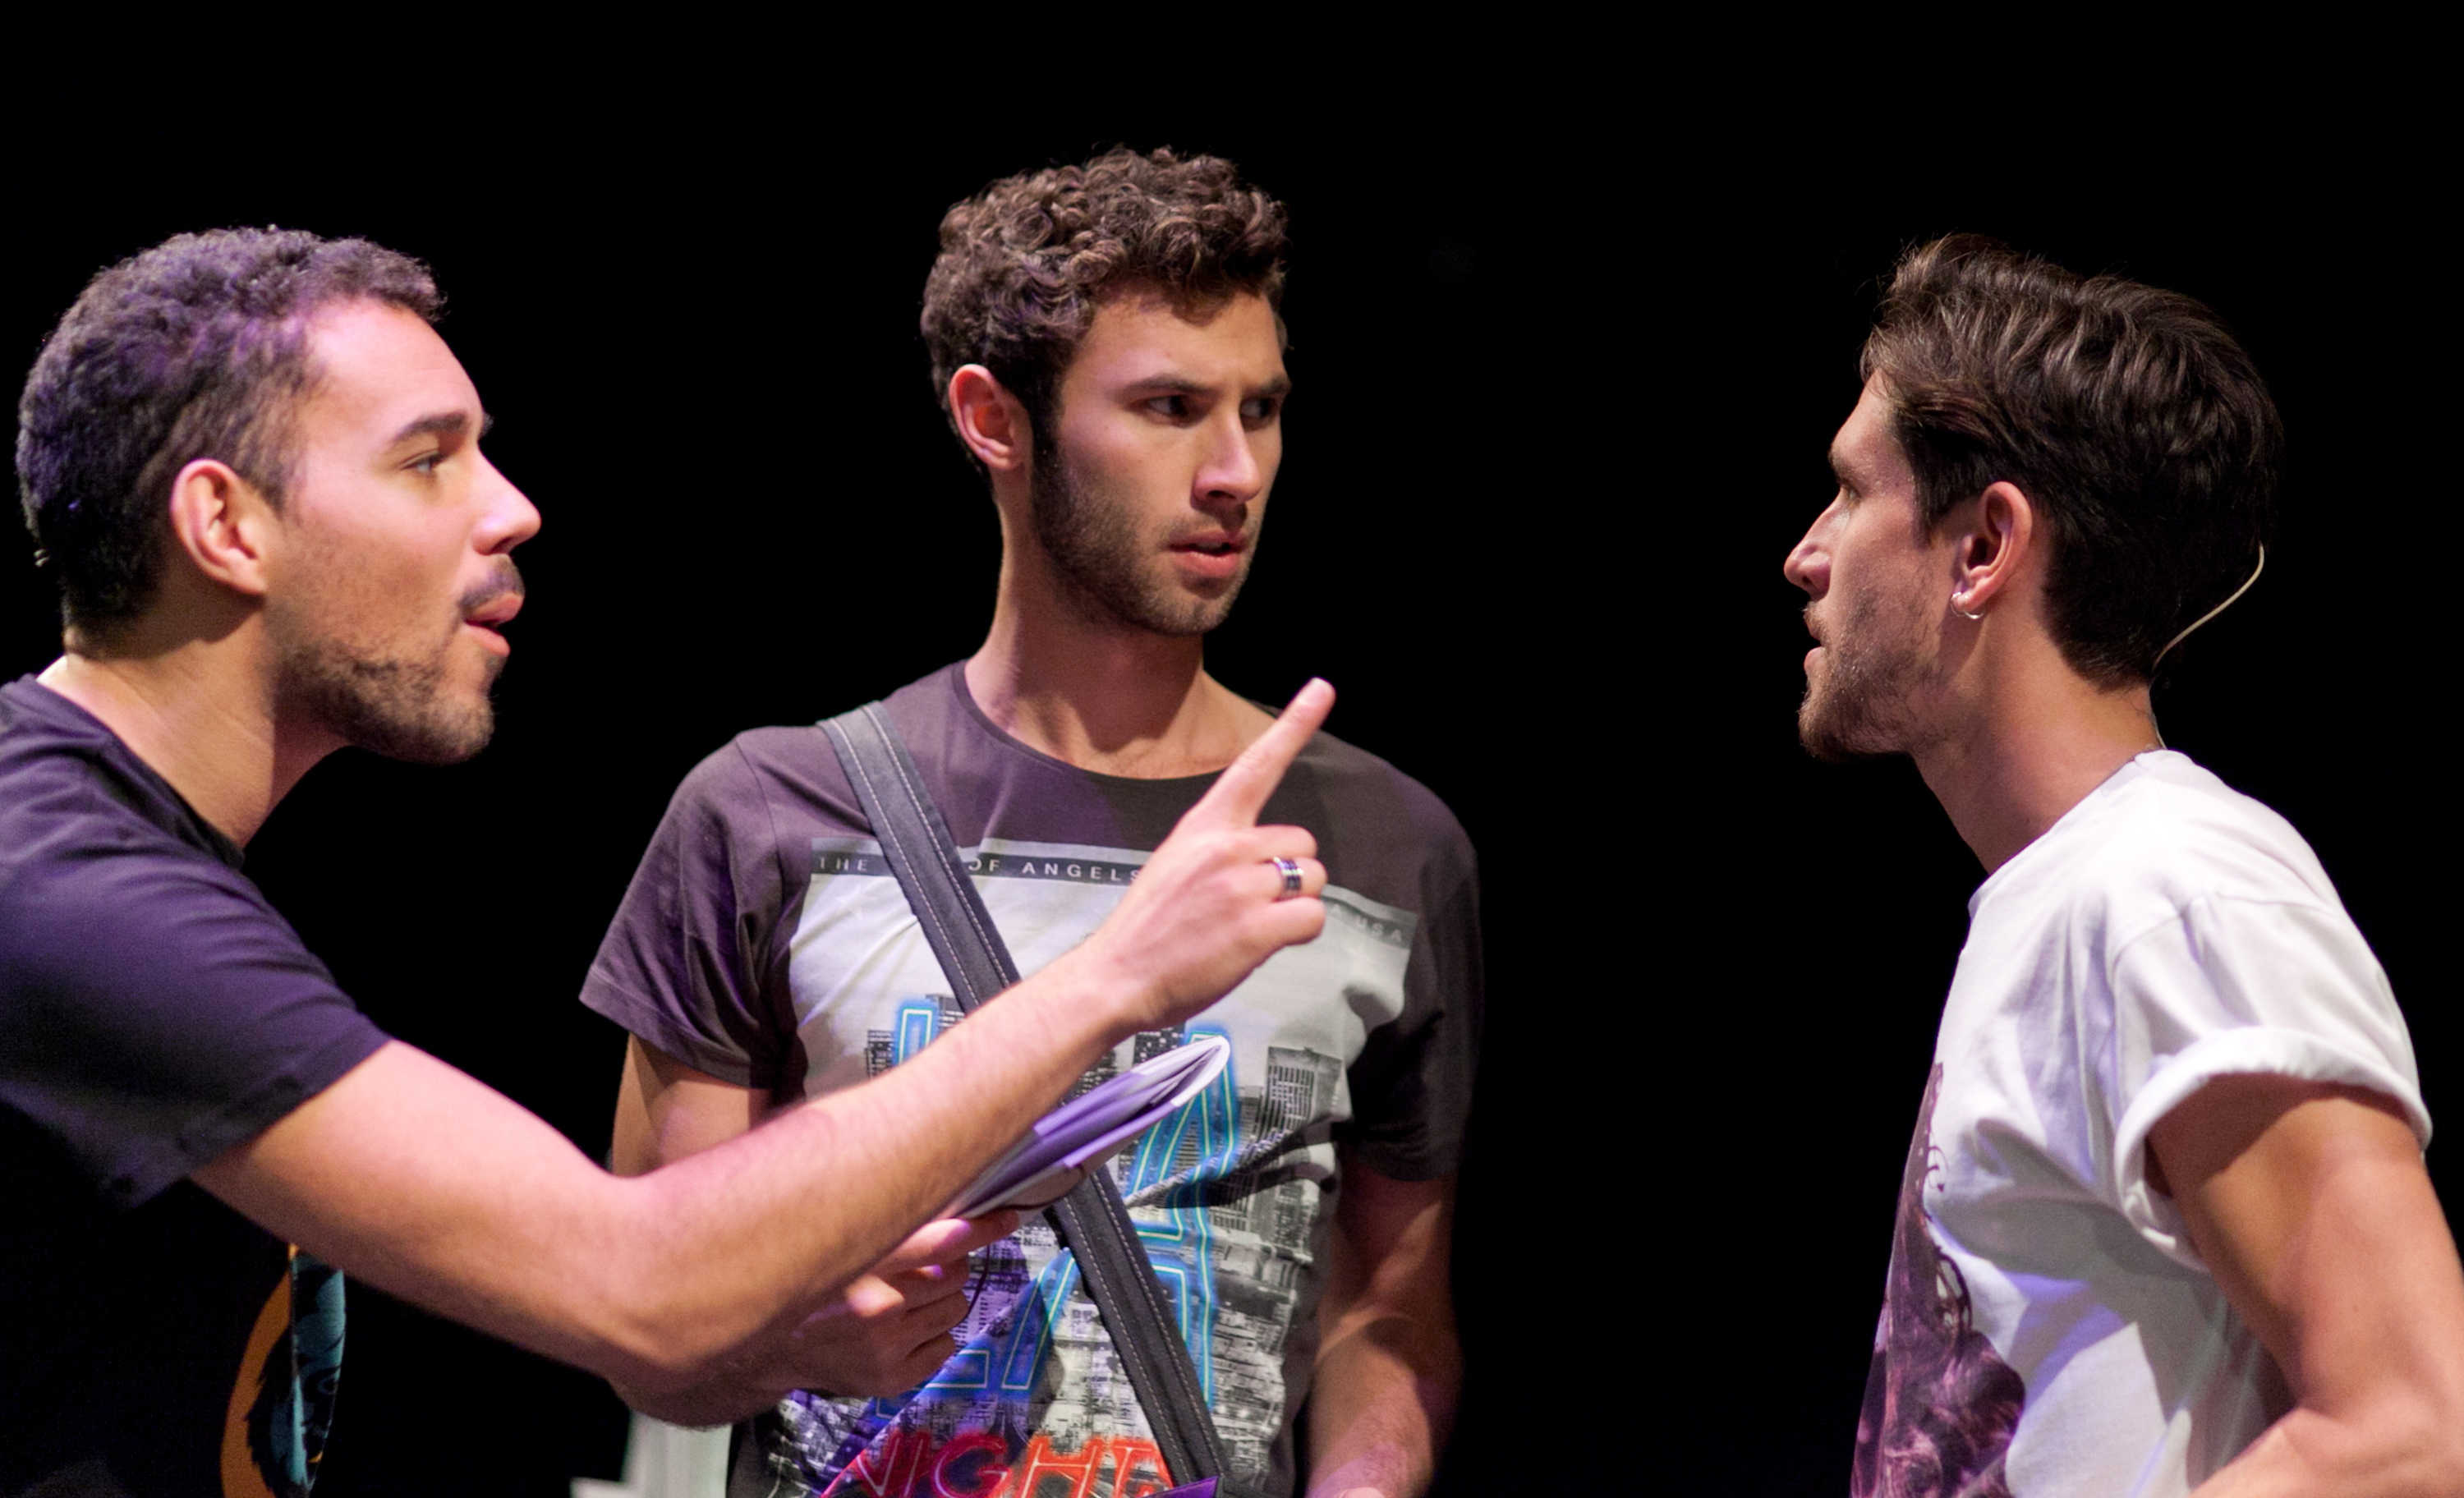 AnotherWayAidenCrawford(Sam)Andy Coxon (Oliver) Bart Edwards (TobyPhotosDarren Bell